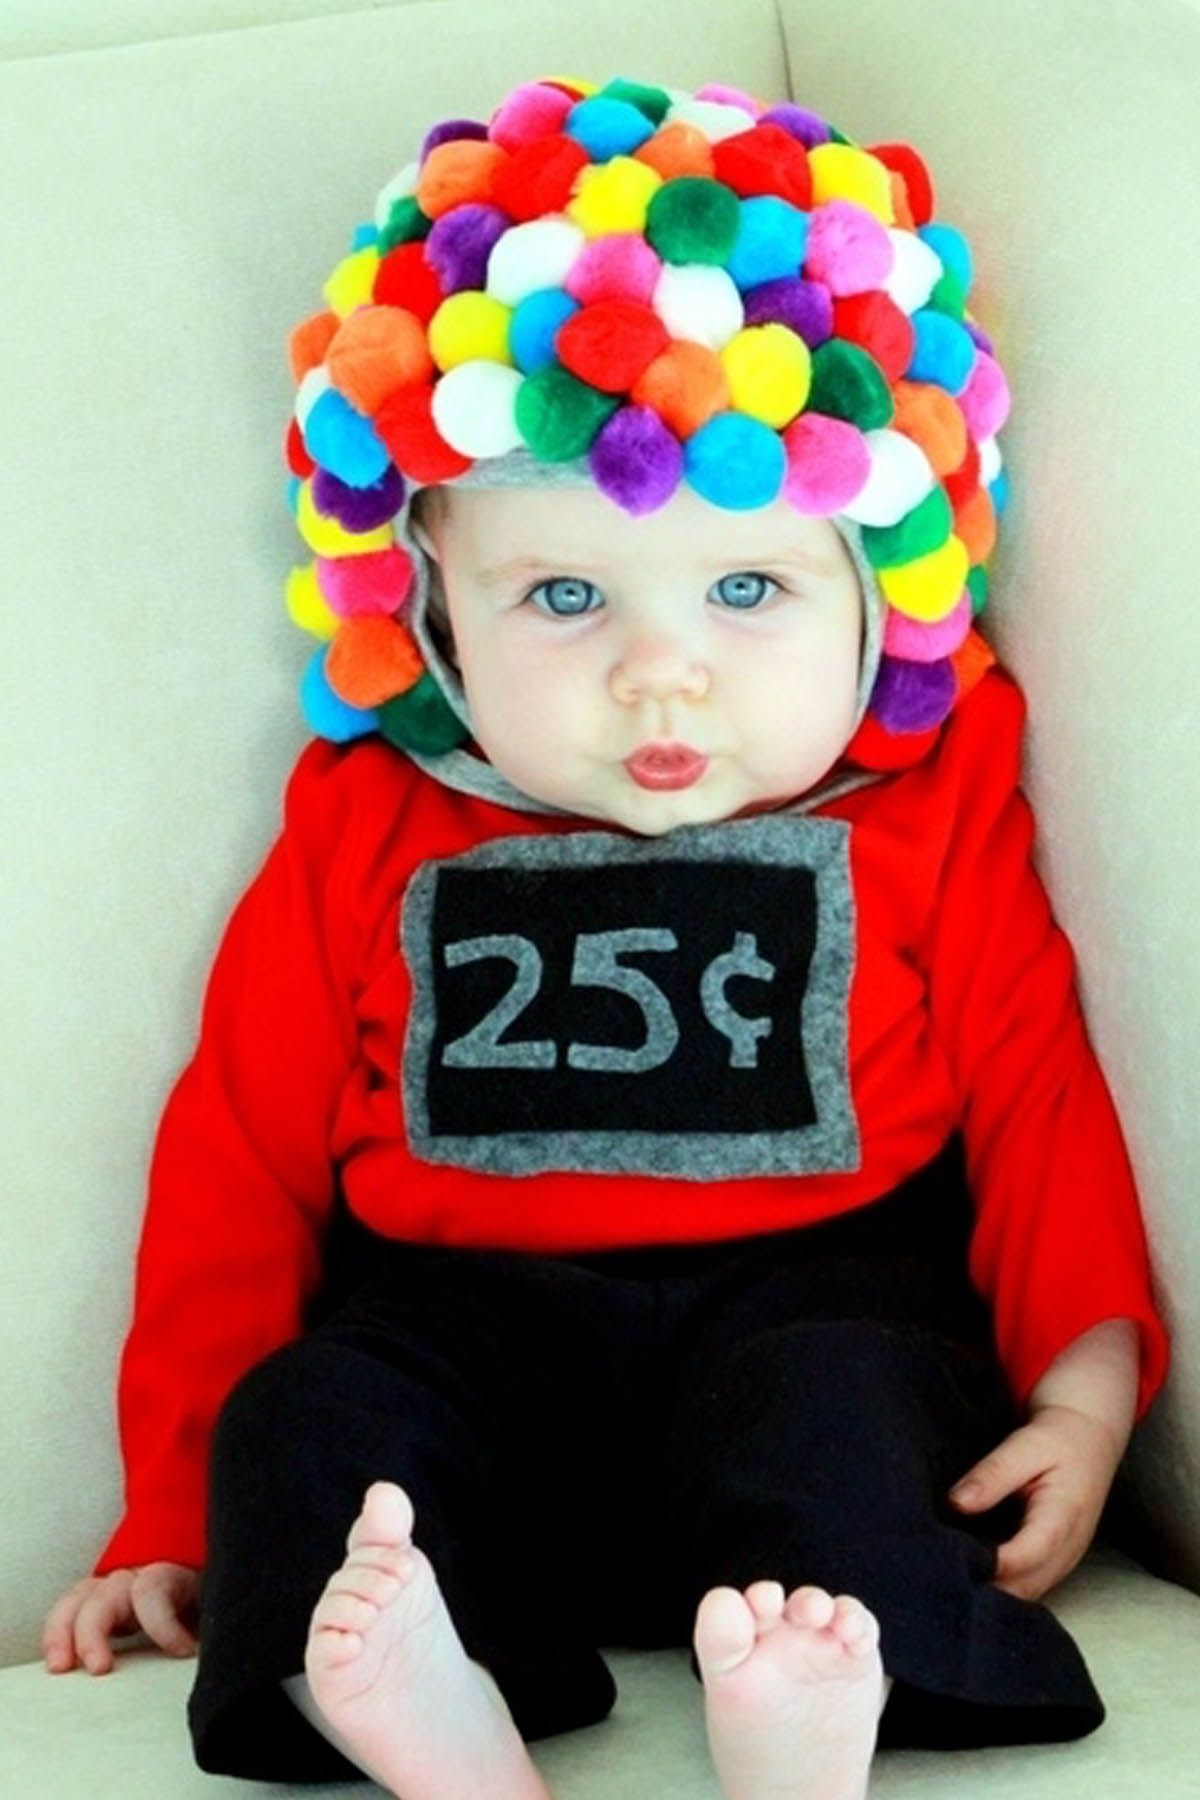 30 cute baby halloween costumes 2017 best ideas for boy and girl 30 cute baby halloween costumes 2017 best ideas for boy and girl infant and toddler costumes solutioingenieria Image collections